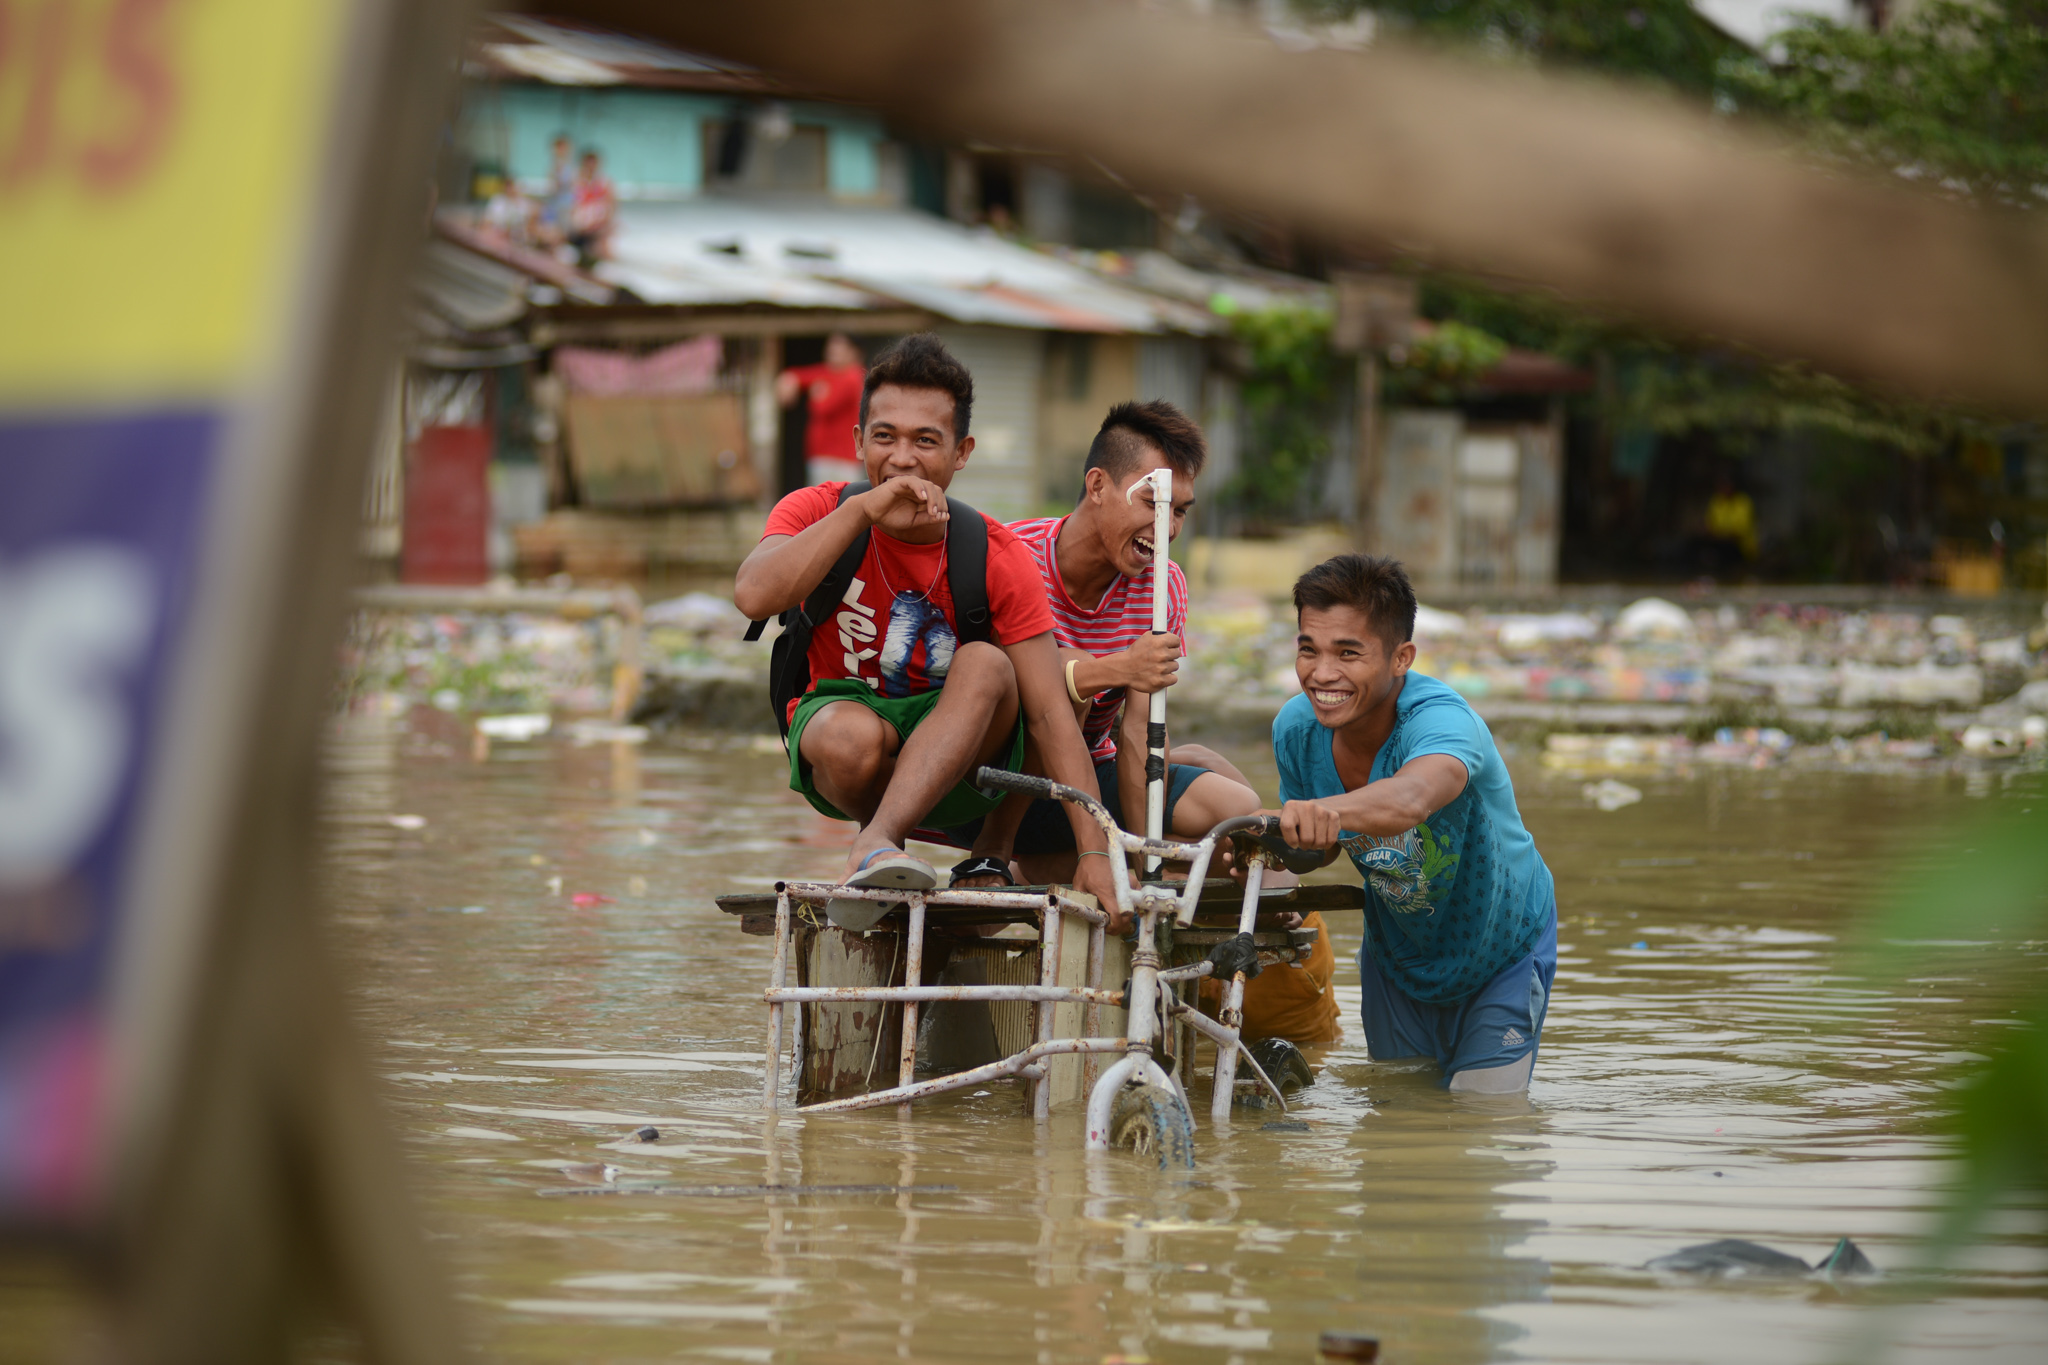 INUNDATED. Men navigate through a flooded area in Marikina City, August 14, 2016. Photo by Martin San Diego/Rappler